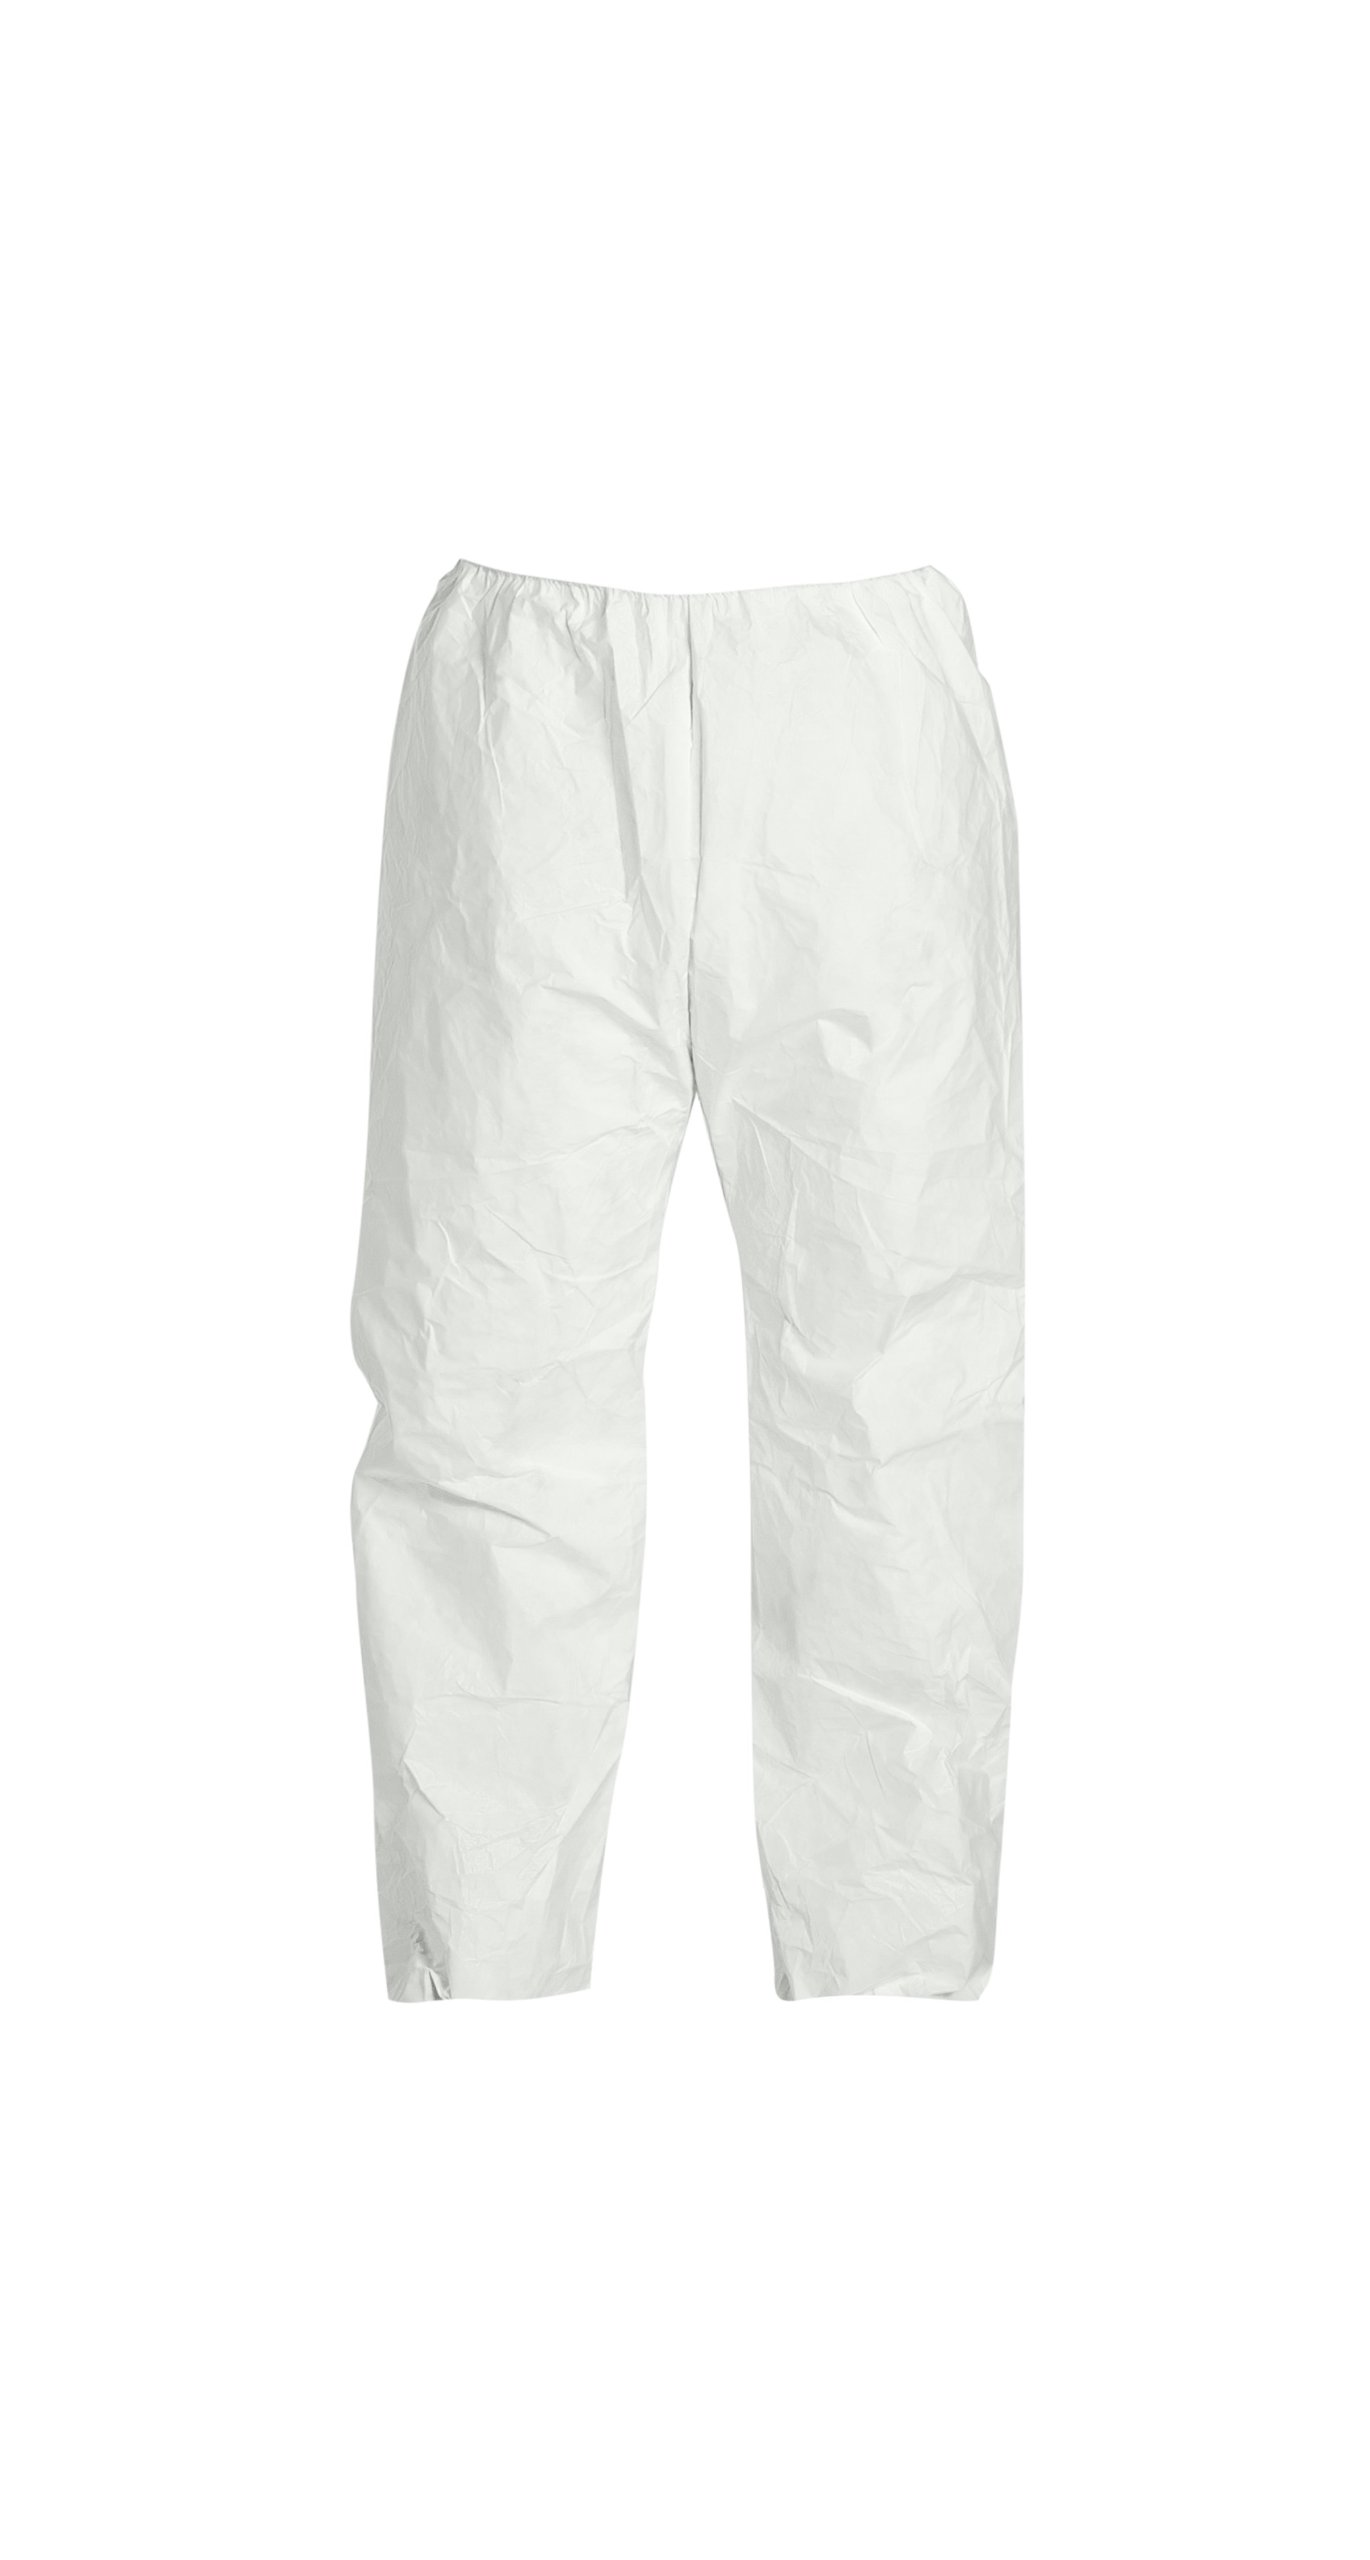 DuPont Tyvek 400 TY350S Disposable Pant with Elastic Waist, White, 4X-Large (Pack of 50) by DuPont (Image #1)